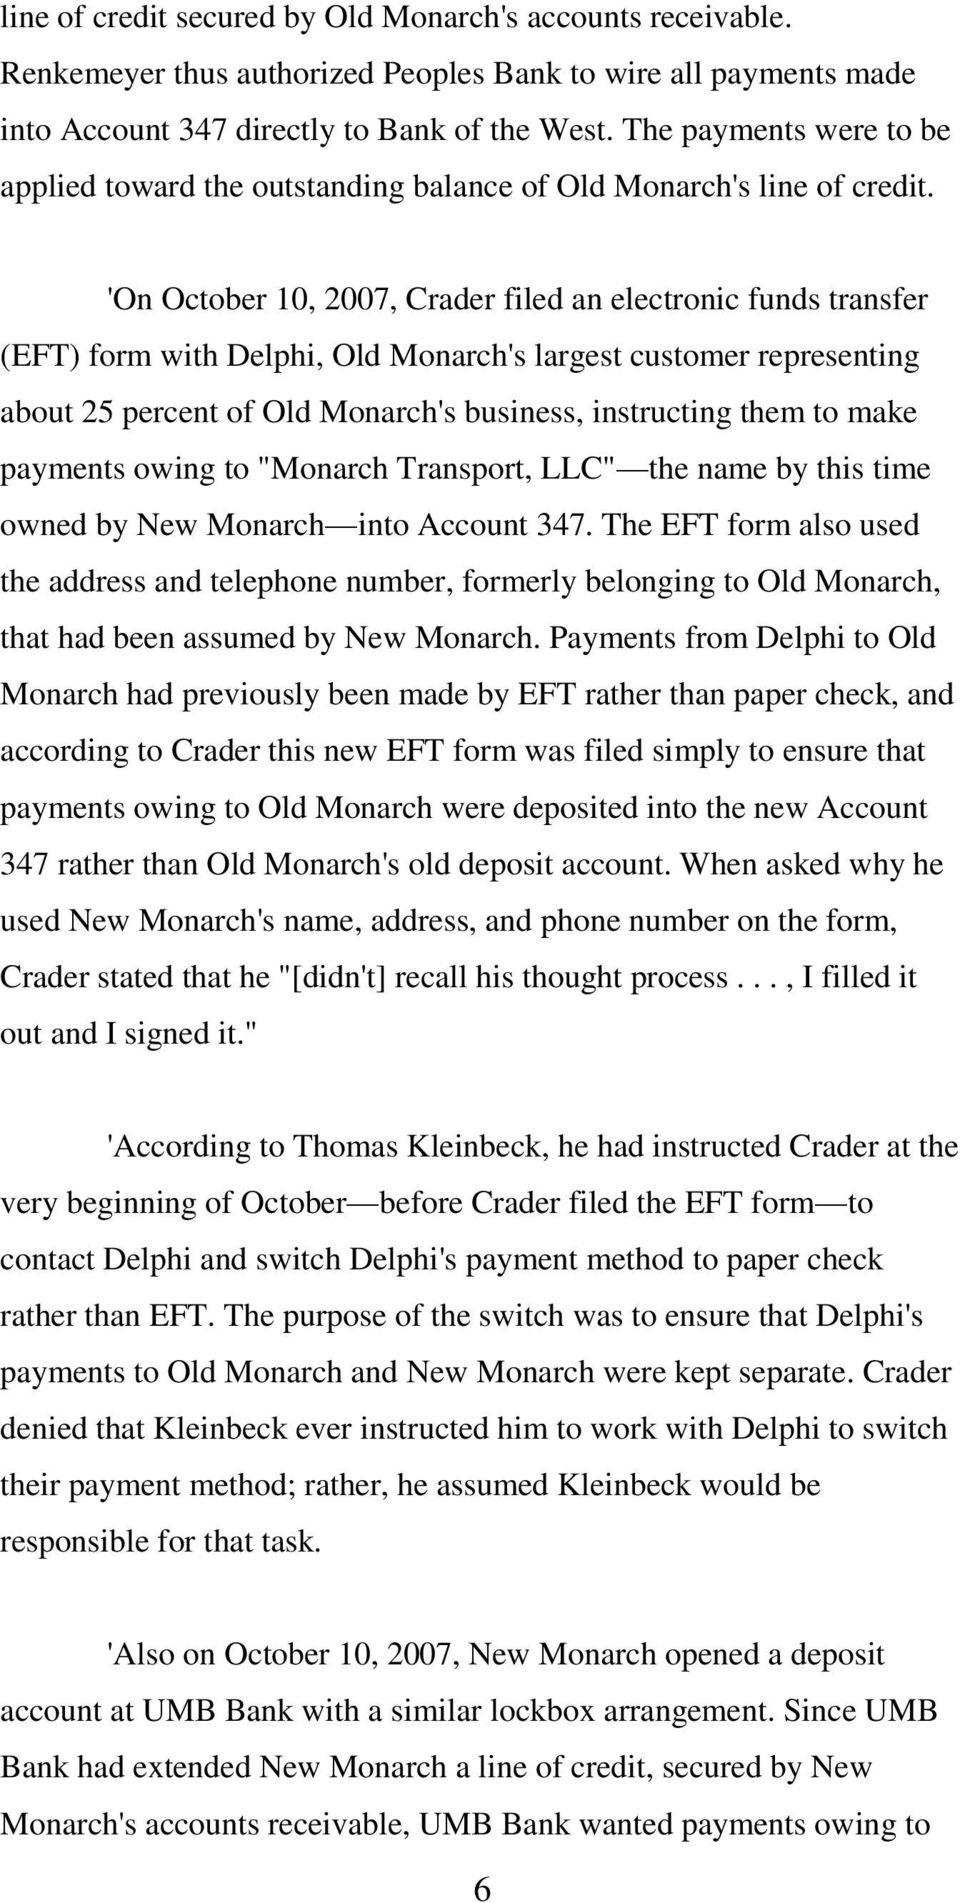 'On October 10, 2007, Crader filed an electronic funds transfer (EFT) form with Delphi, Old Monarch's largest customer representing about 25 percent of Old Monarch's business, instructing them to